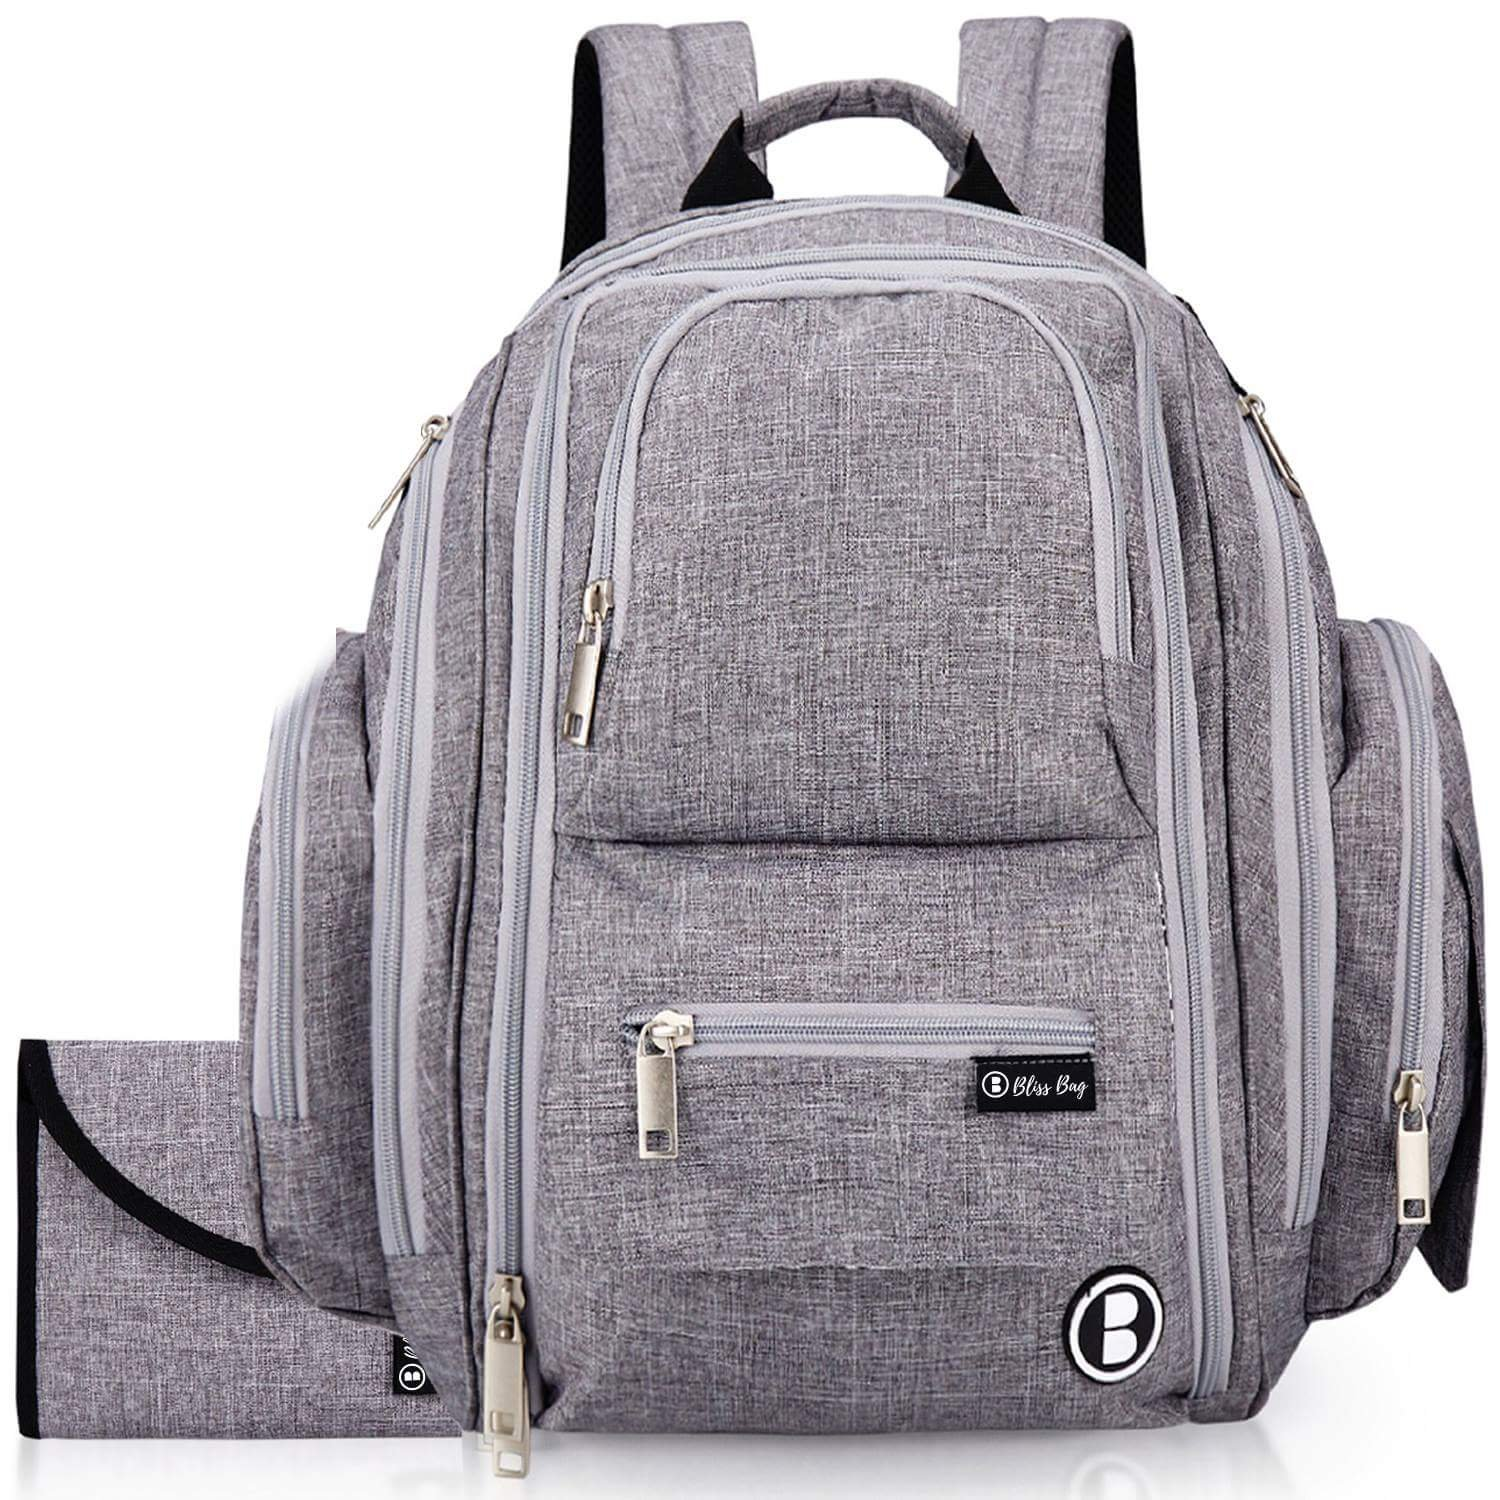 Diaper Backpack by Bliss Bag for Girls, Boys, Twins, Infants, Moms & Dads. Includes Travel System/Organizer, Changing Pad, Stroller Straps, Insulated Pockets, Water Resistant Fabric. (Gray)